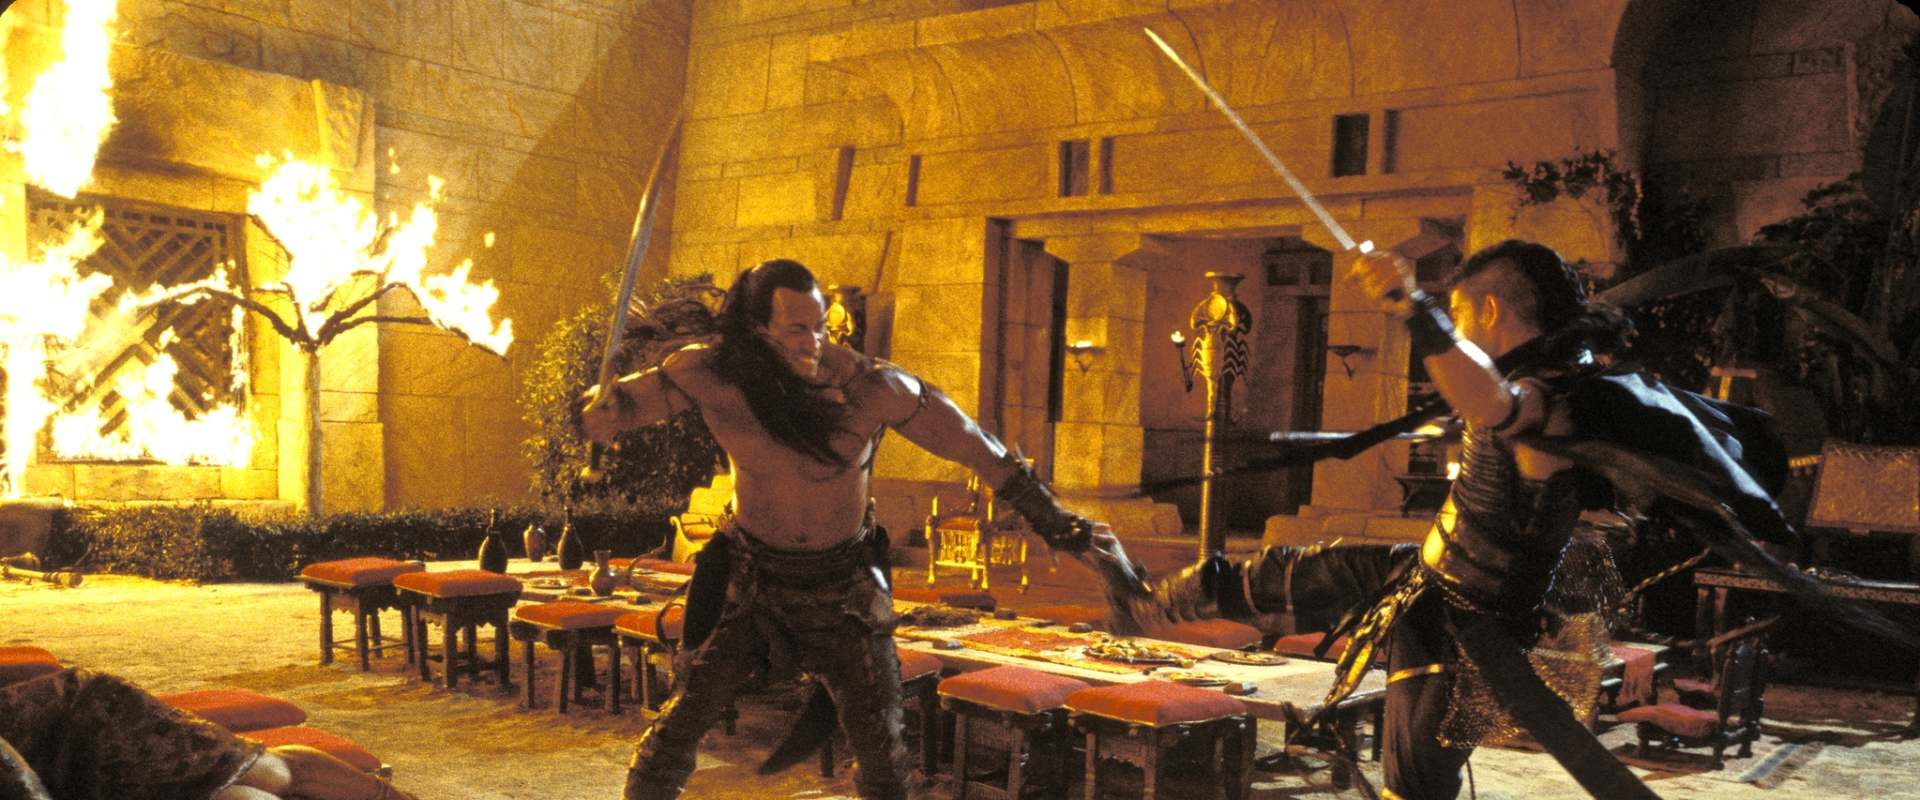 The Scorpion King background 2